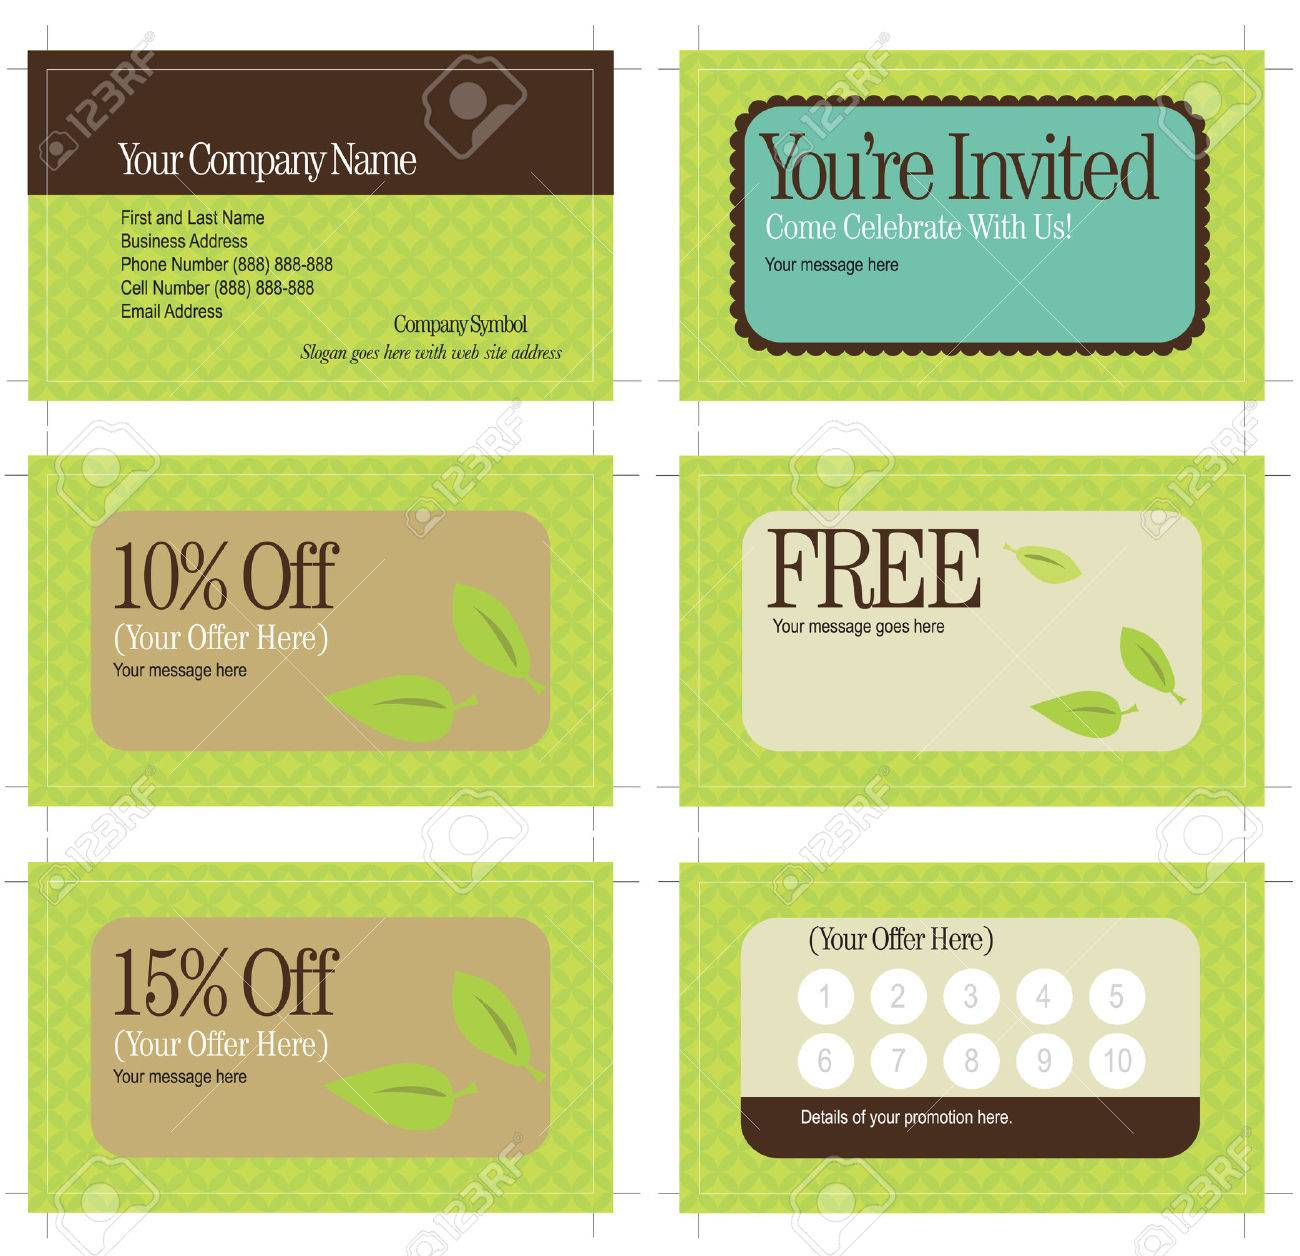 35x2 Business Card And Promo Cards Includes Crop Marks Key